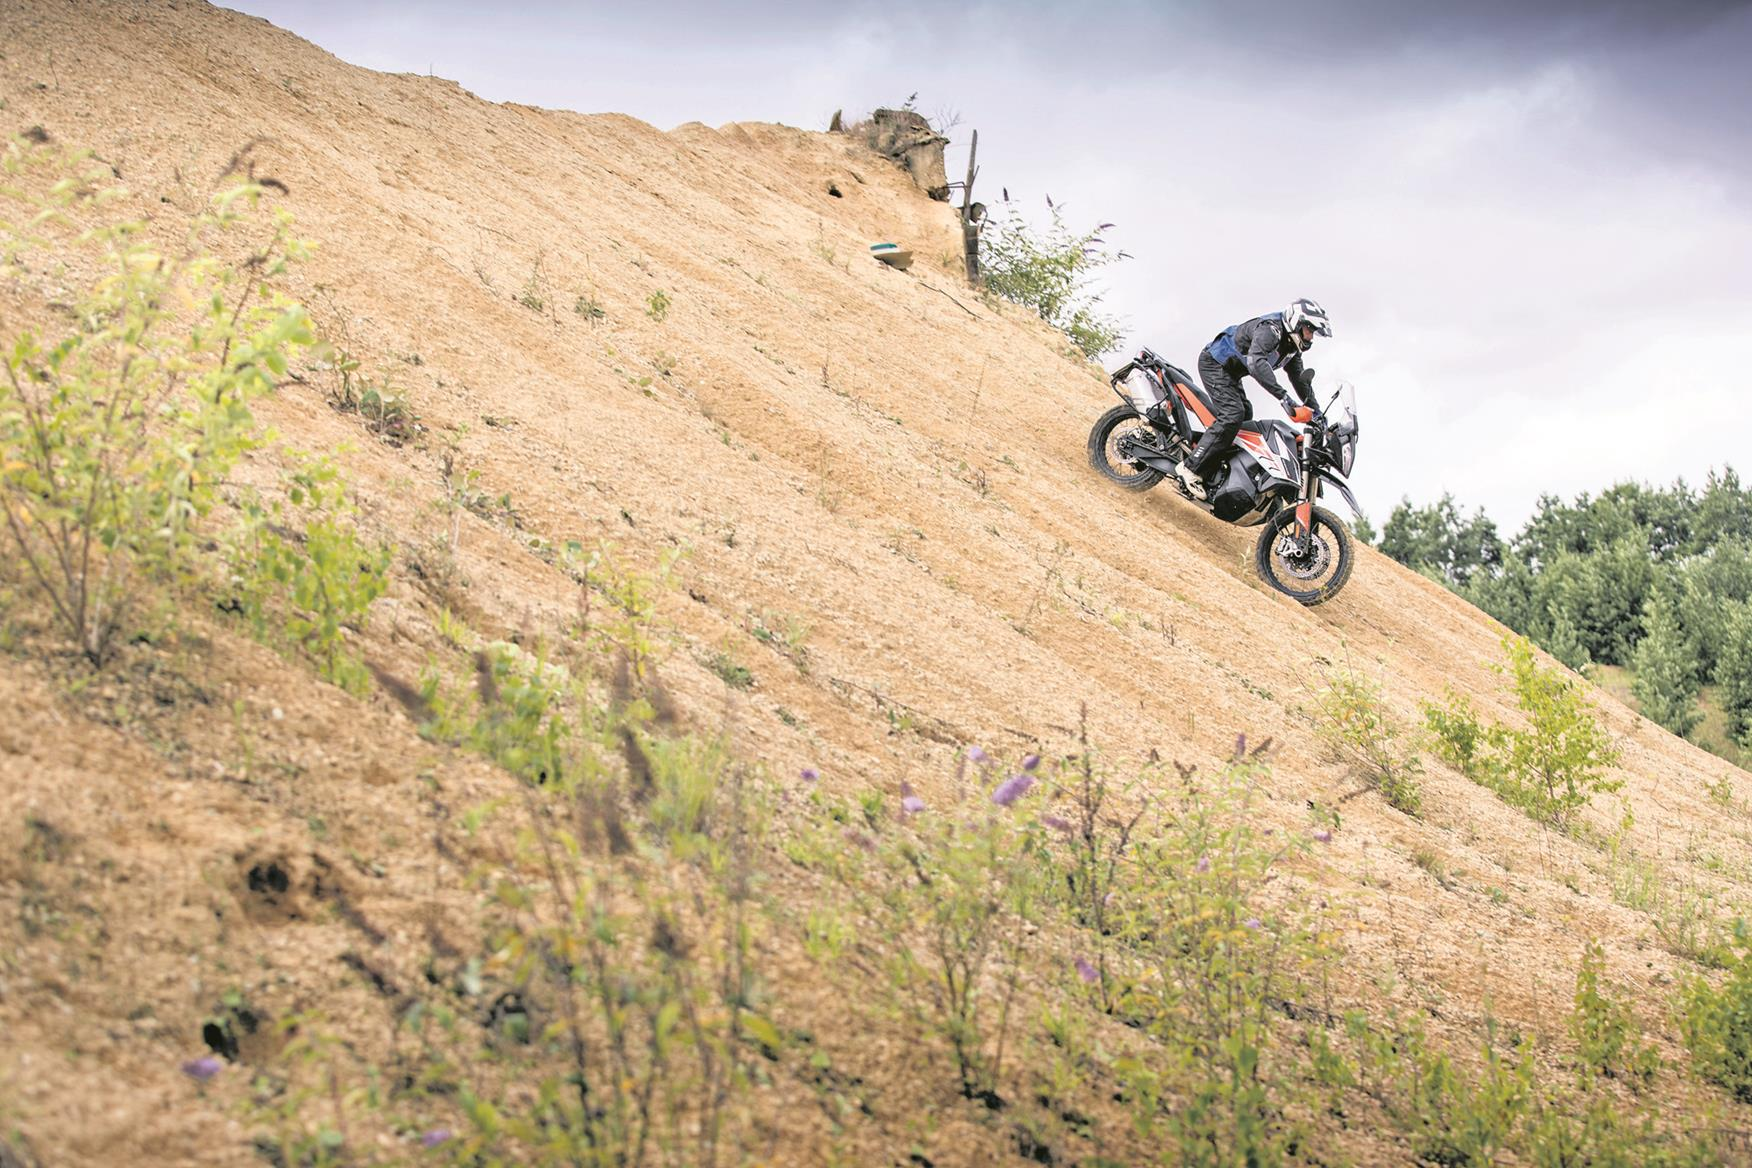 Heading down hill off-road aboard the KTM 790 Adventure R